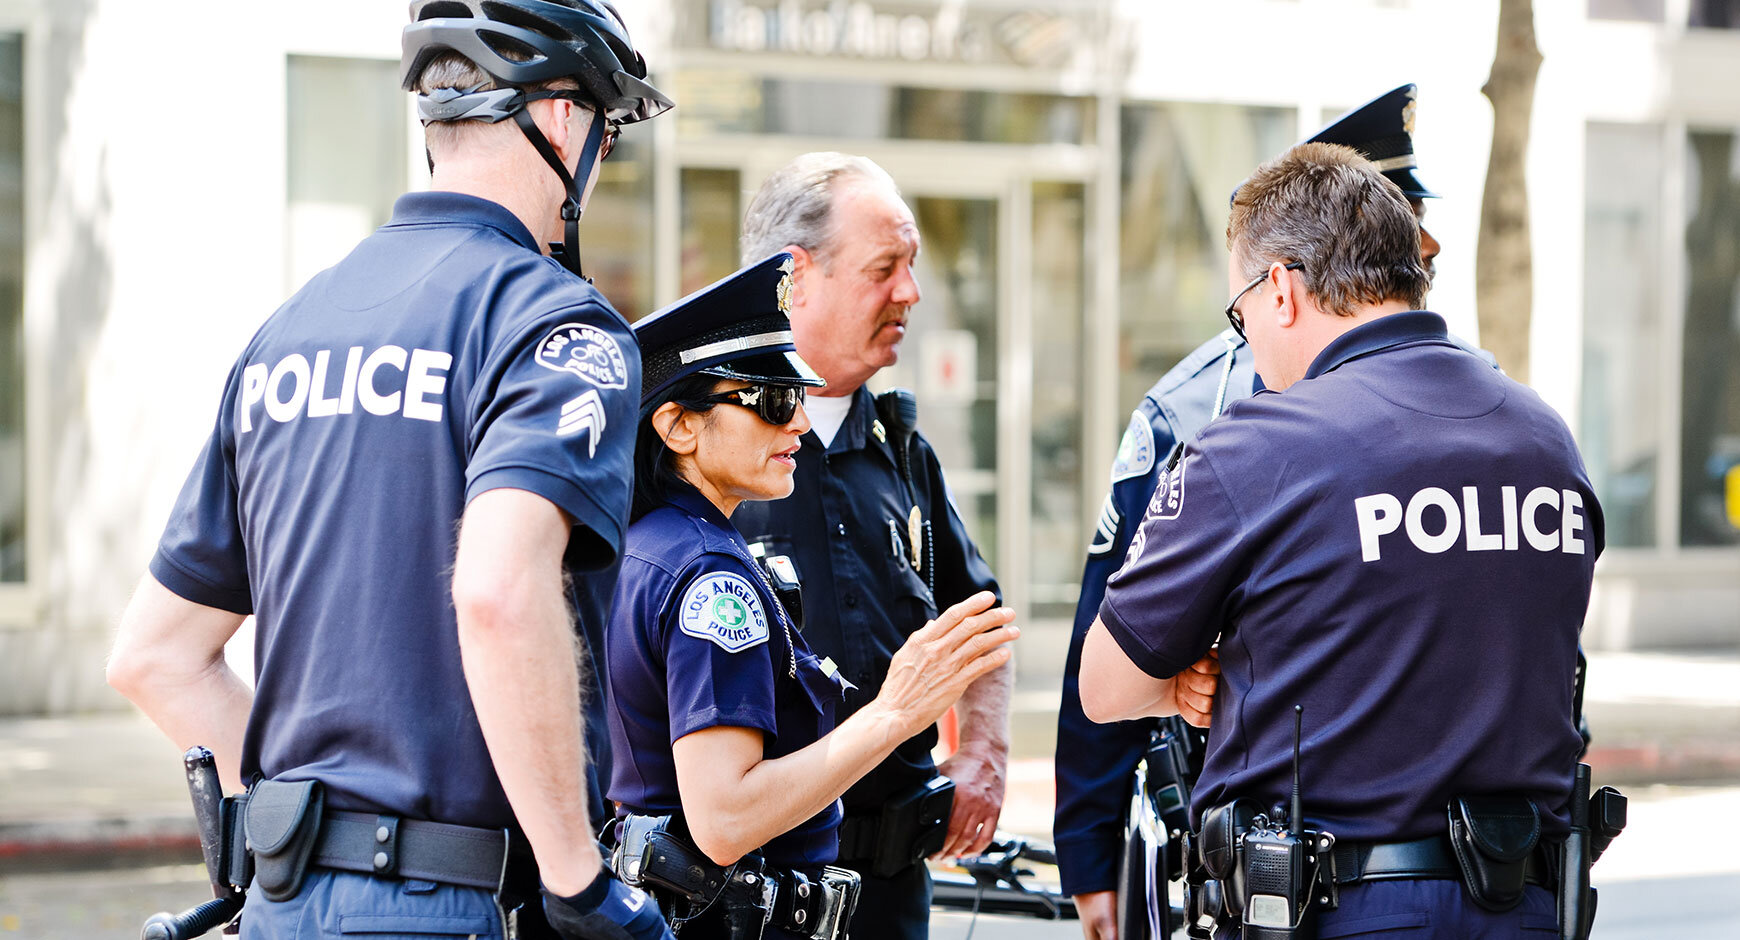 The average law enforcement officer can work as many as 500 hours of overtime duty in a year. -